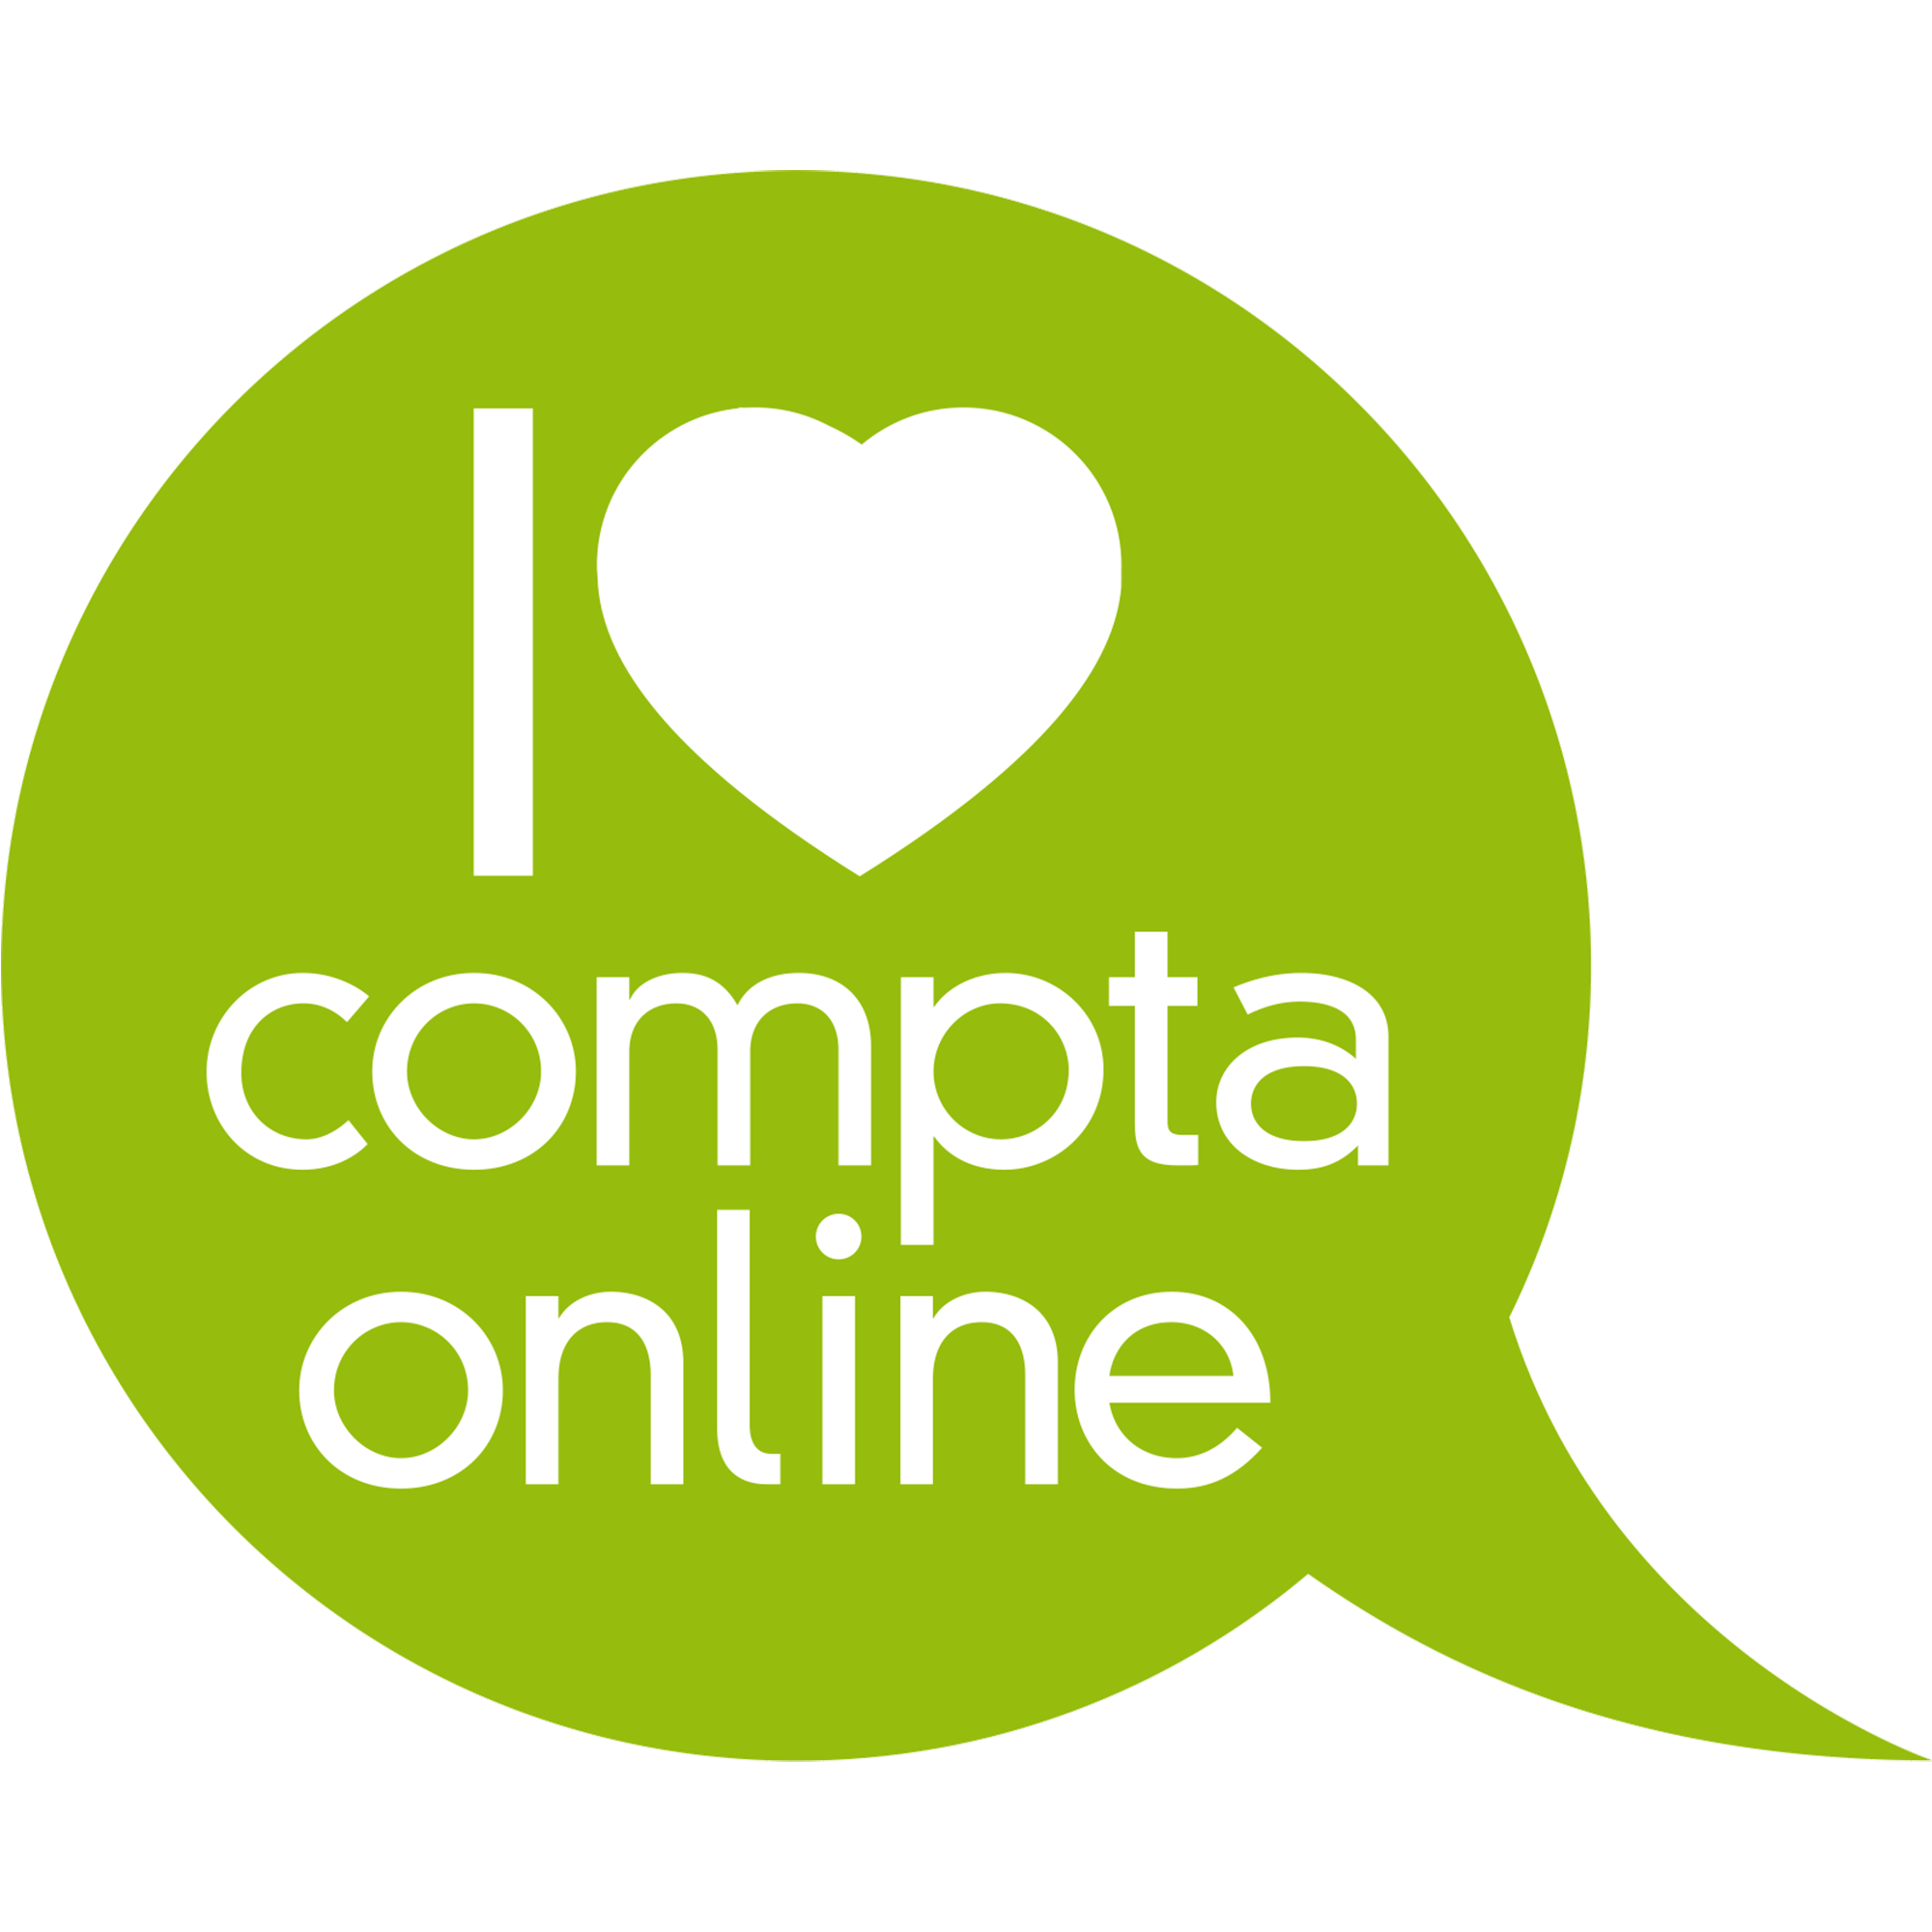 Logo Compta Online rectangle